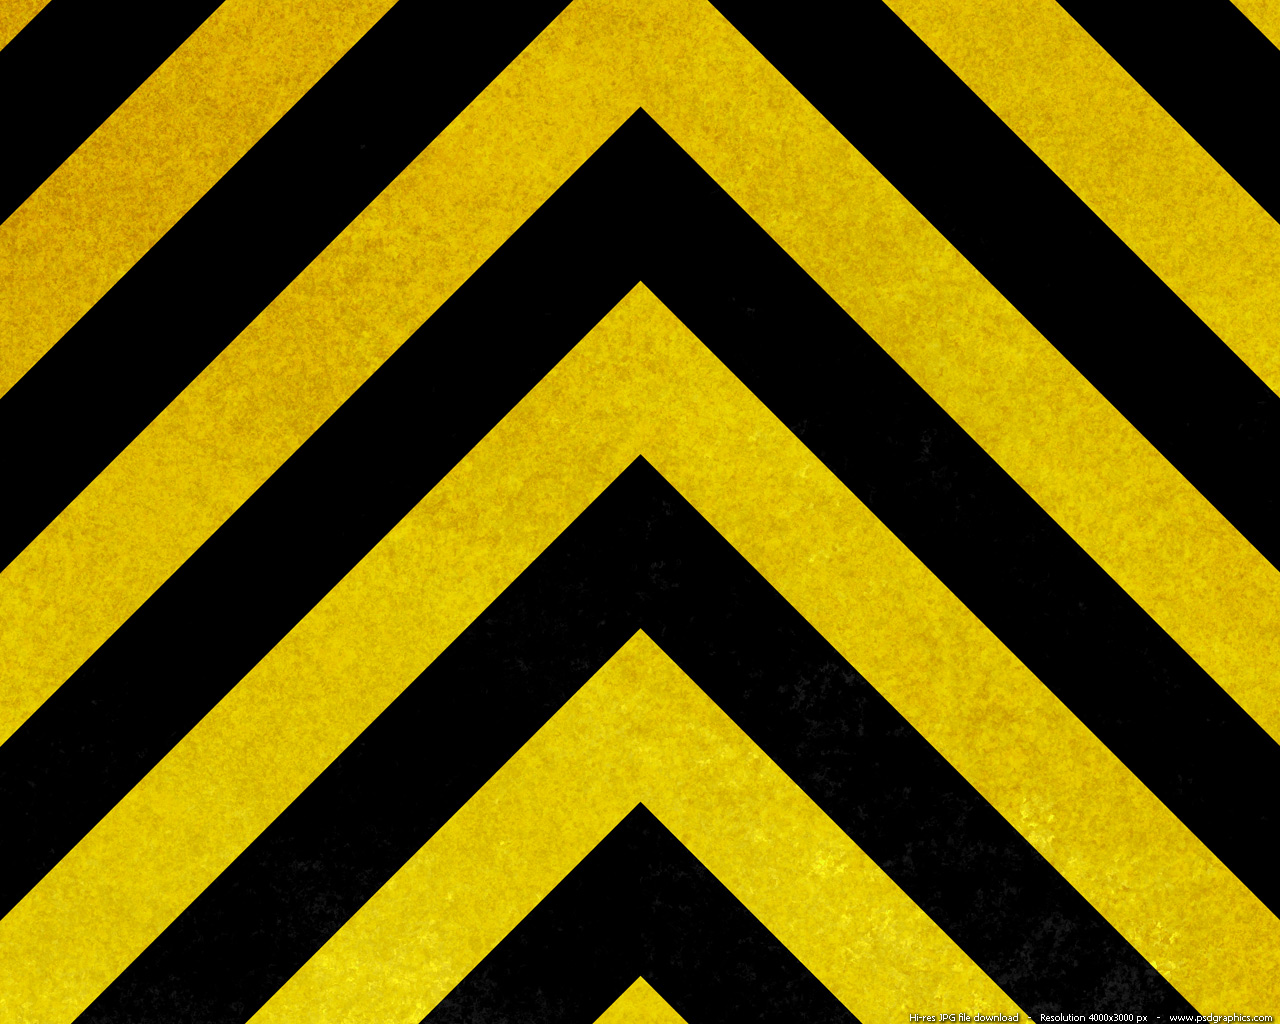 Border frame with black and yellow stripe on white background - Color Theme Yellow And Black Keywords Peeled Warning Paint Seamless Old Warning Stripes Rusty Danger Strips Textures Safety Sign Background